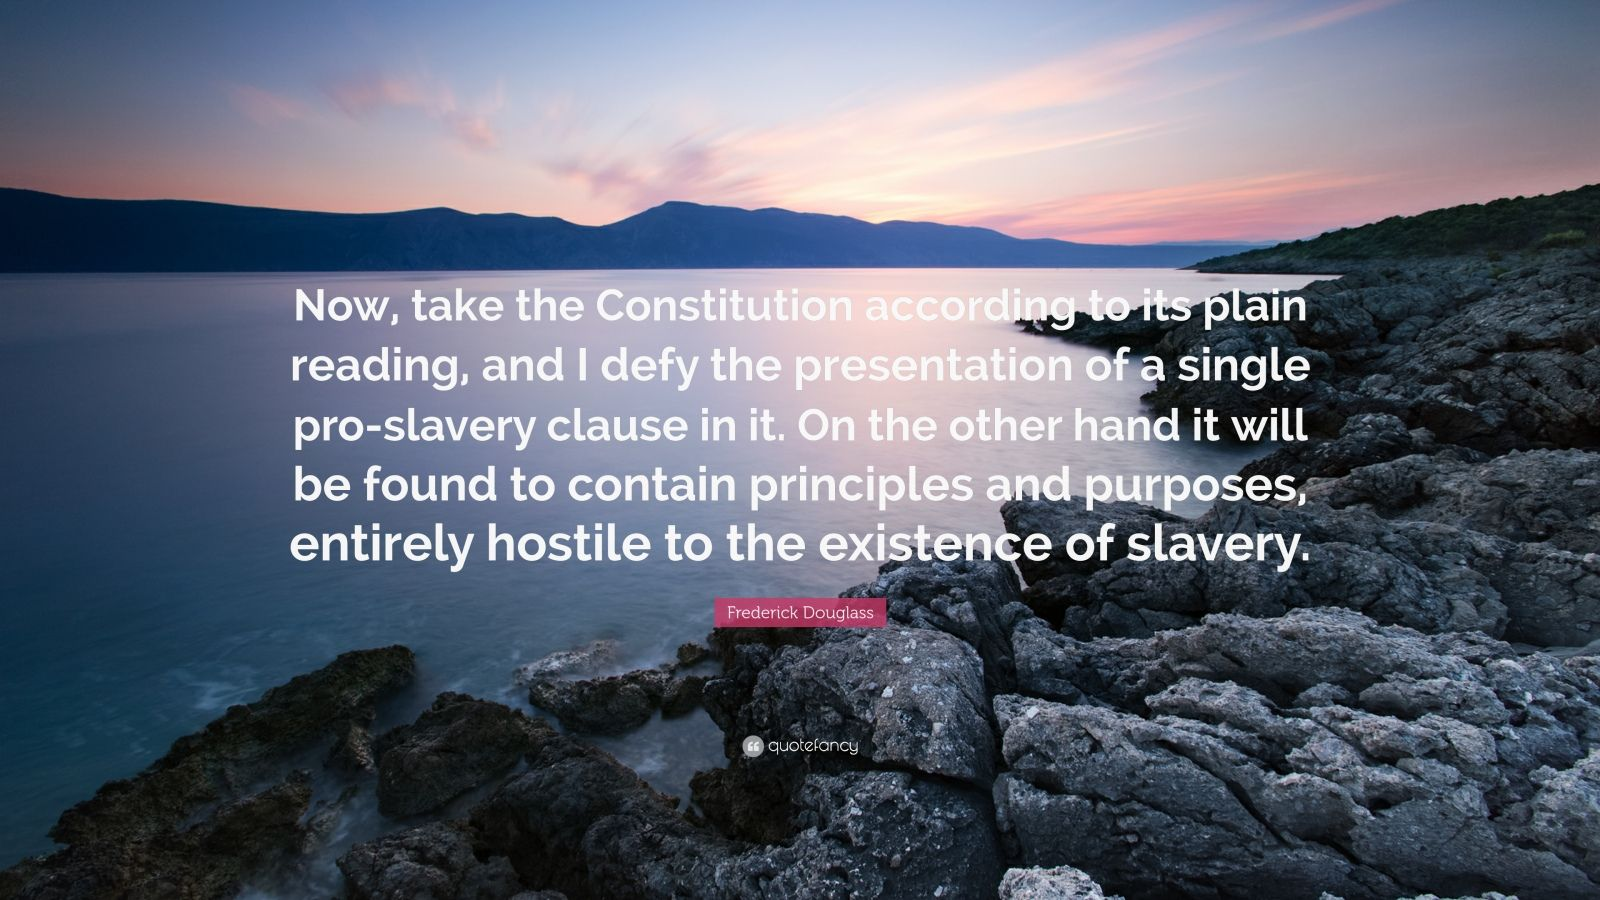 """Frederick Douglass Quote: """"Now, take the Constitution according to its plain reading, and I defy the presentation of a single pro-slavery clause in it. On the other hand it will be found to contain principles and purposes, entirely hostile to the existence of slavery."""""""